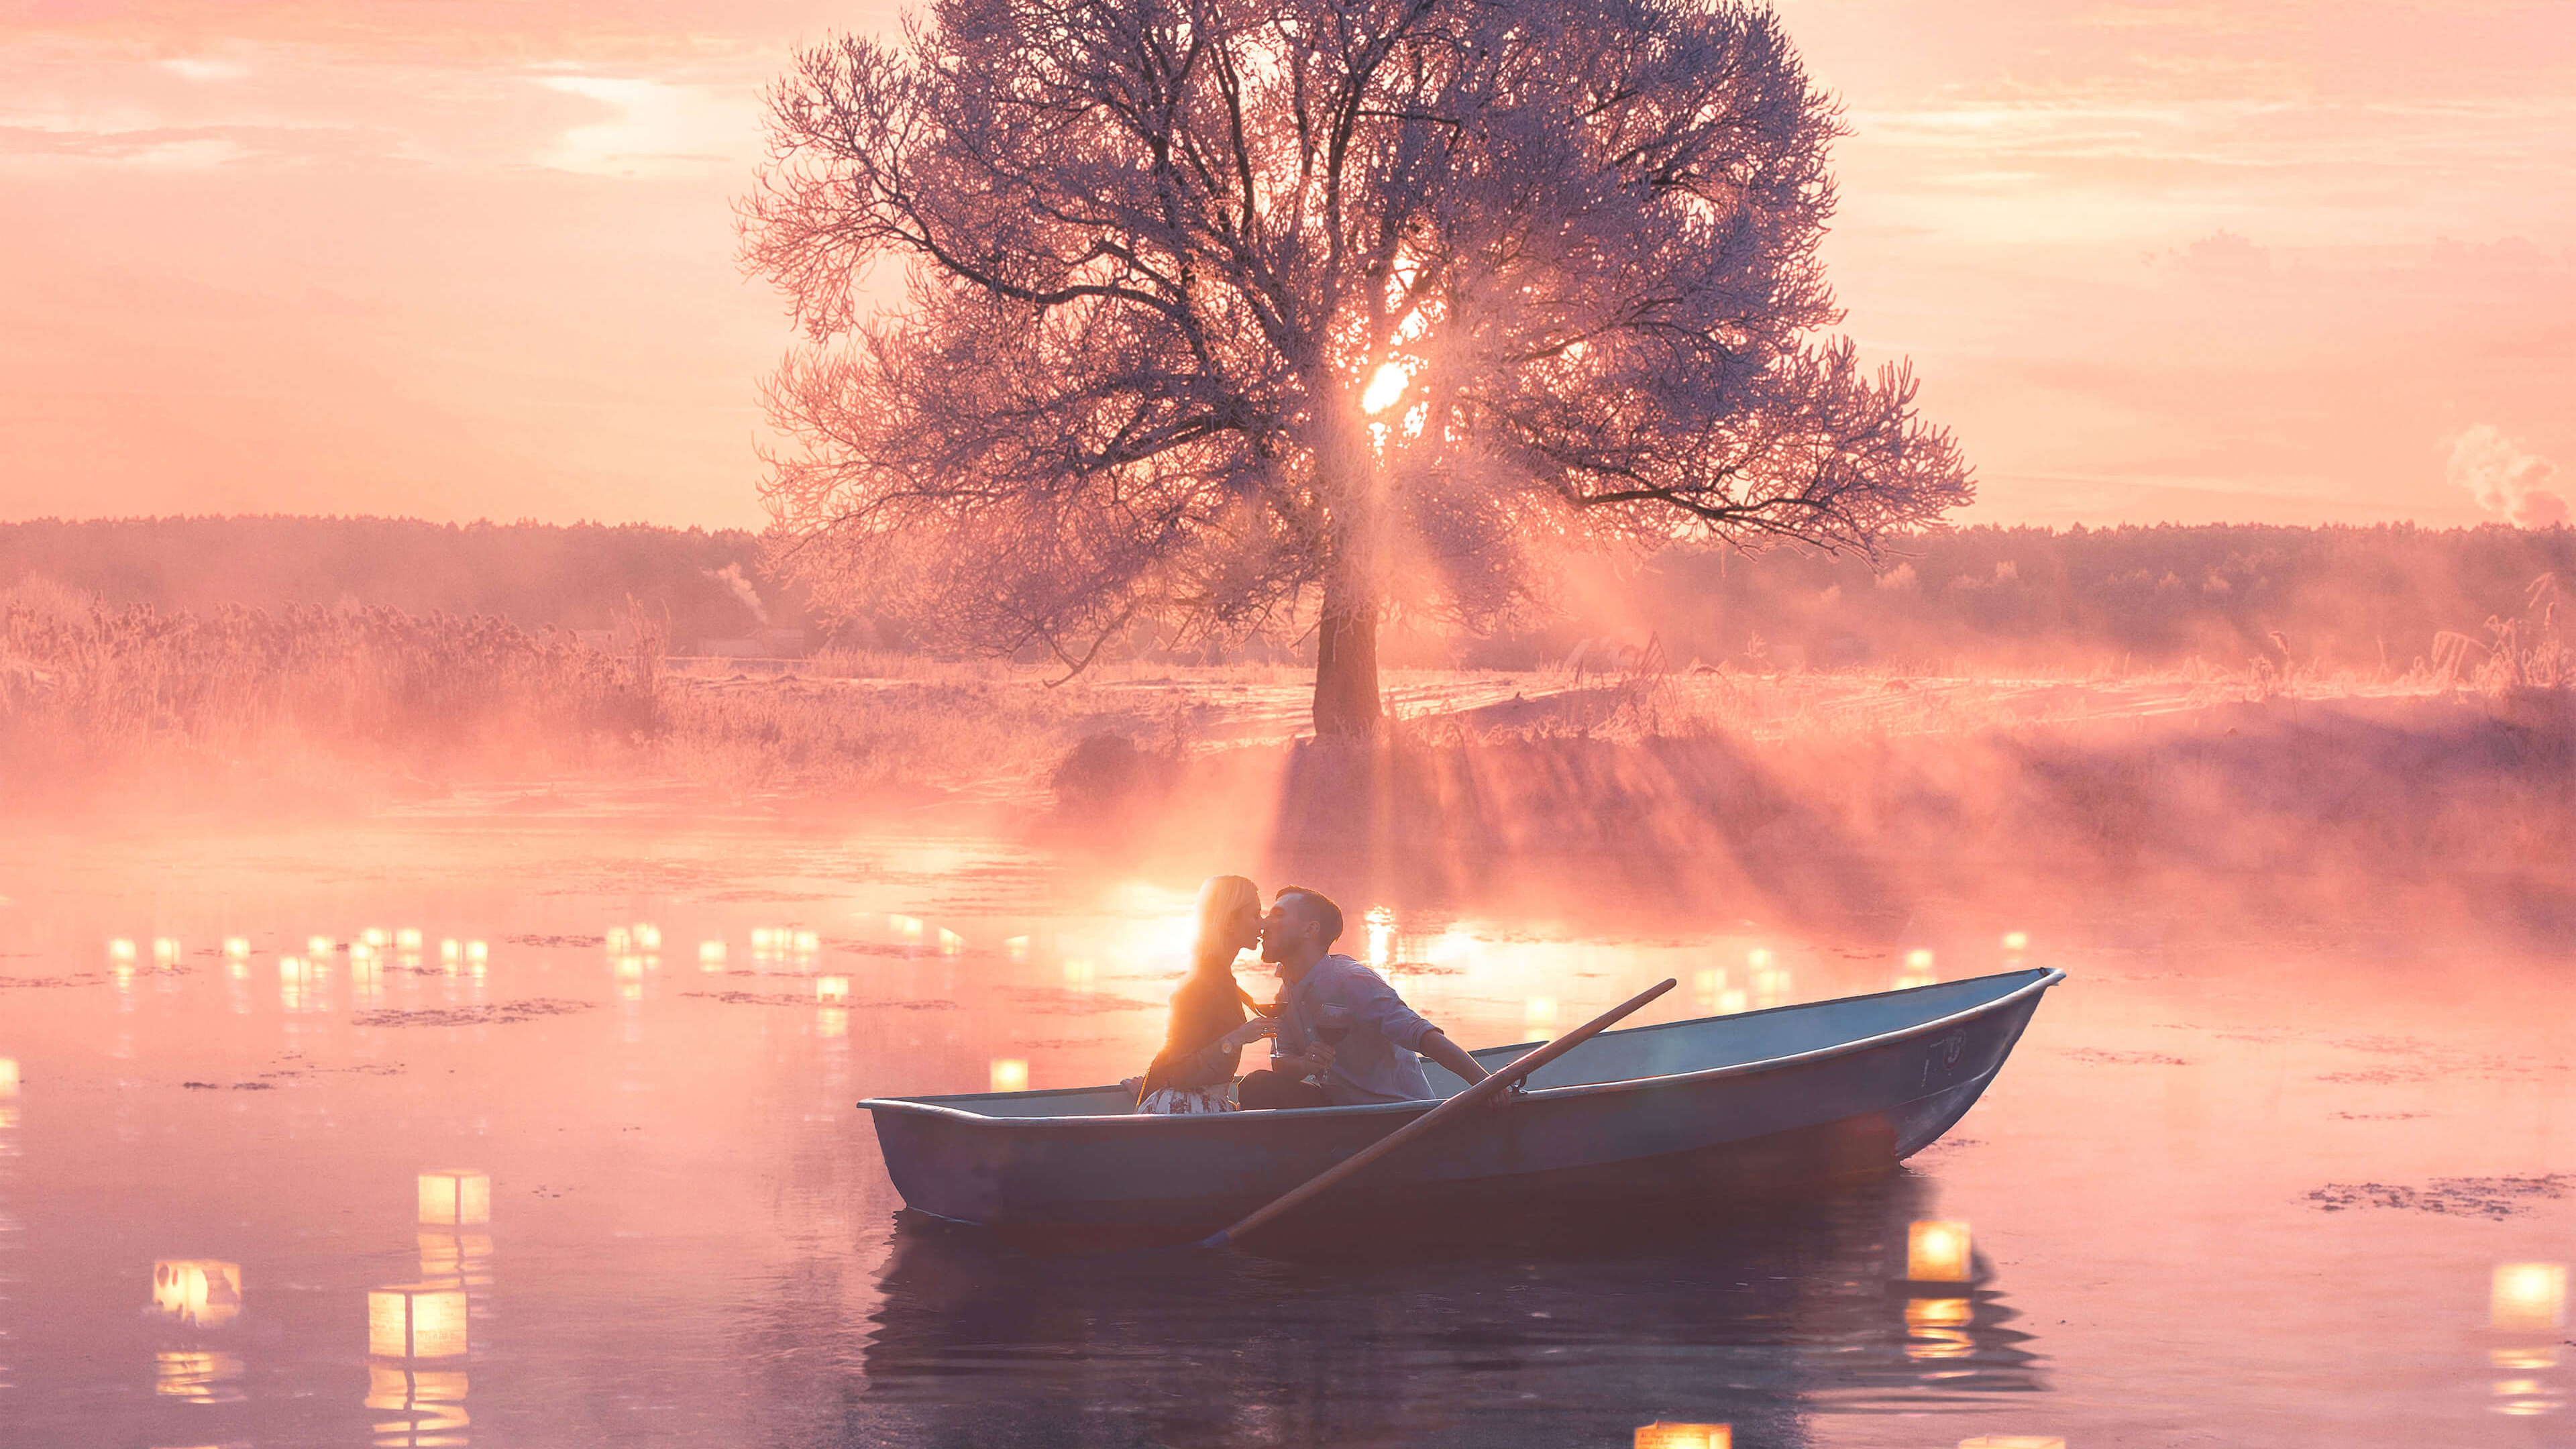 Romantic Couple Boat Hd Love 4k Wallpapers Images Backgrounds Photos And Pictures